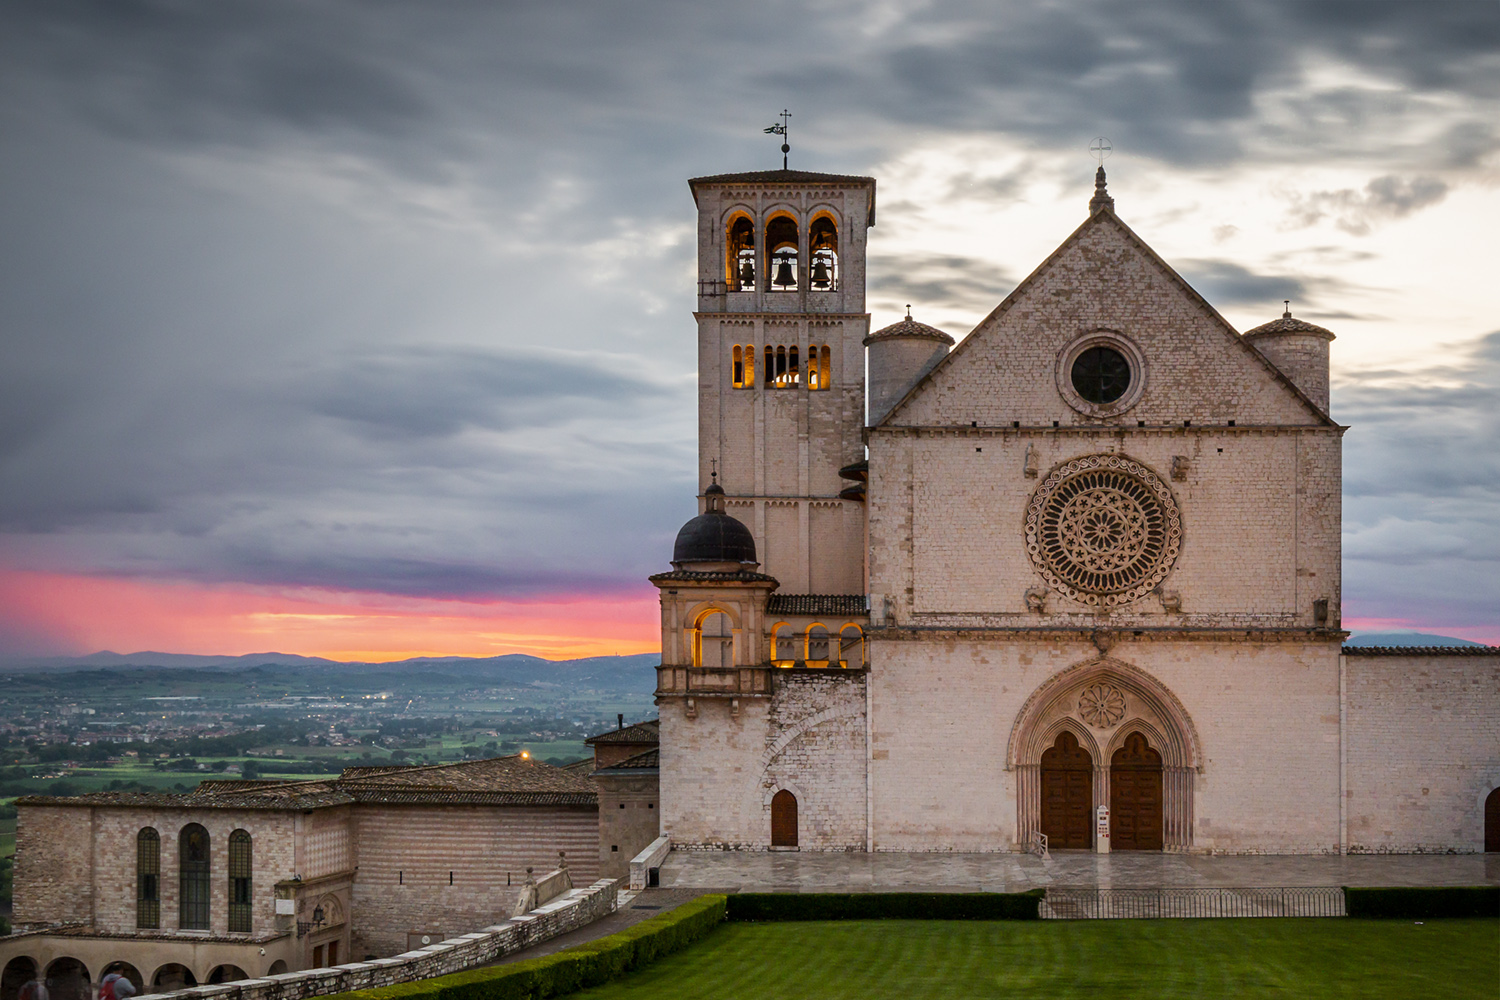 basilica-di-san-francesco-assisi-001